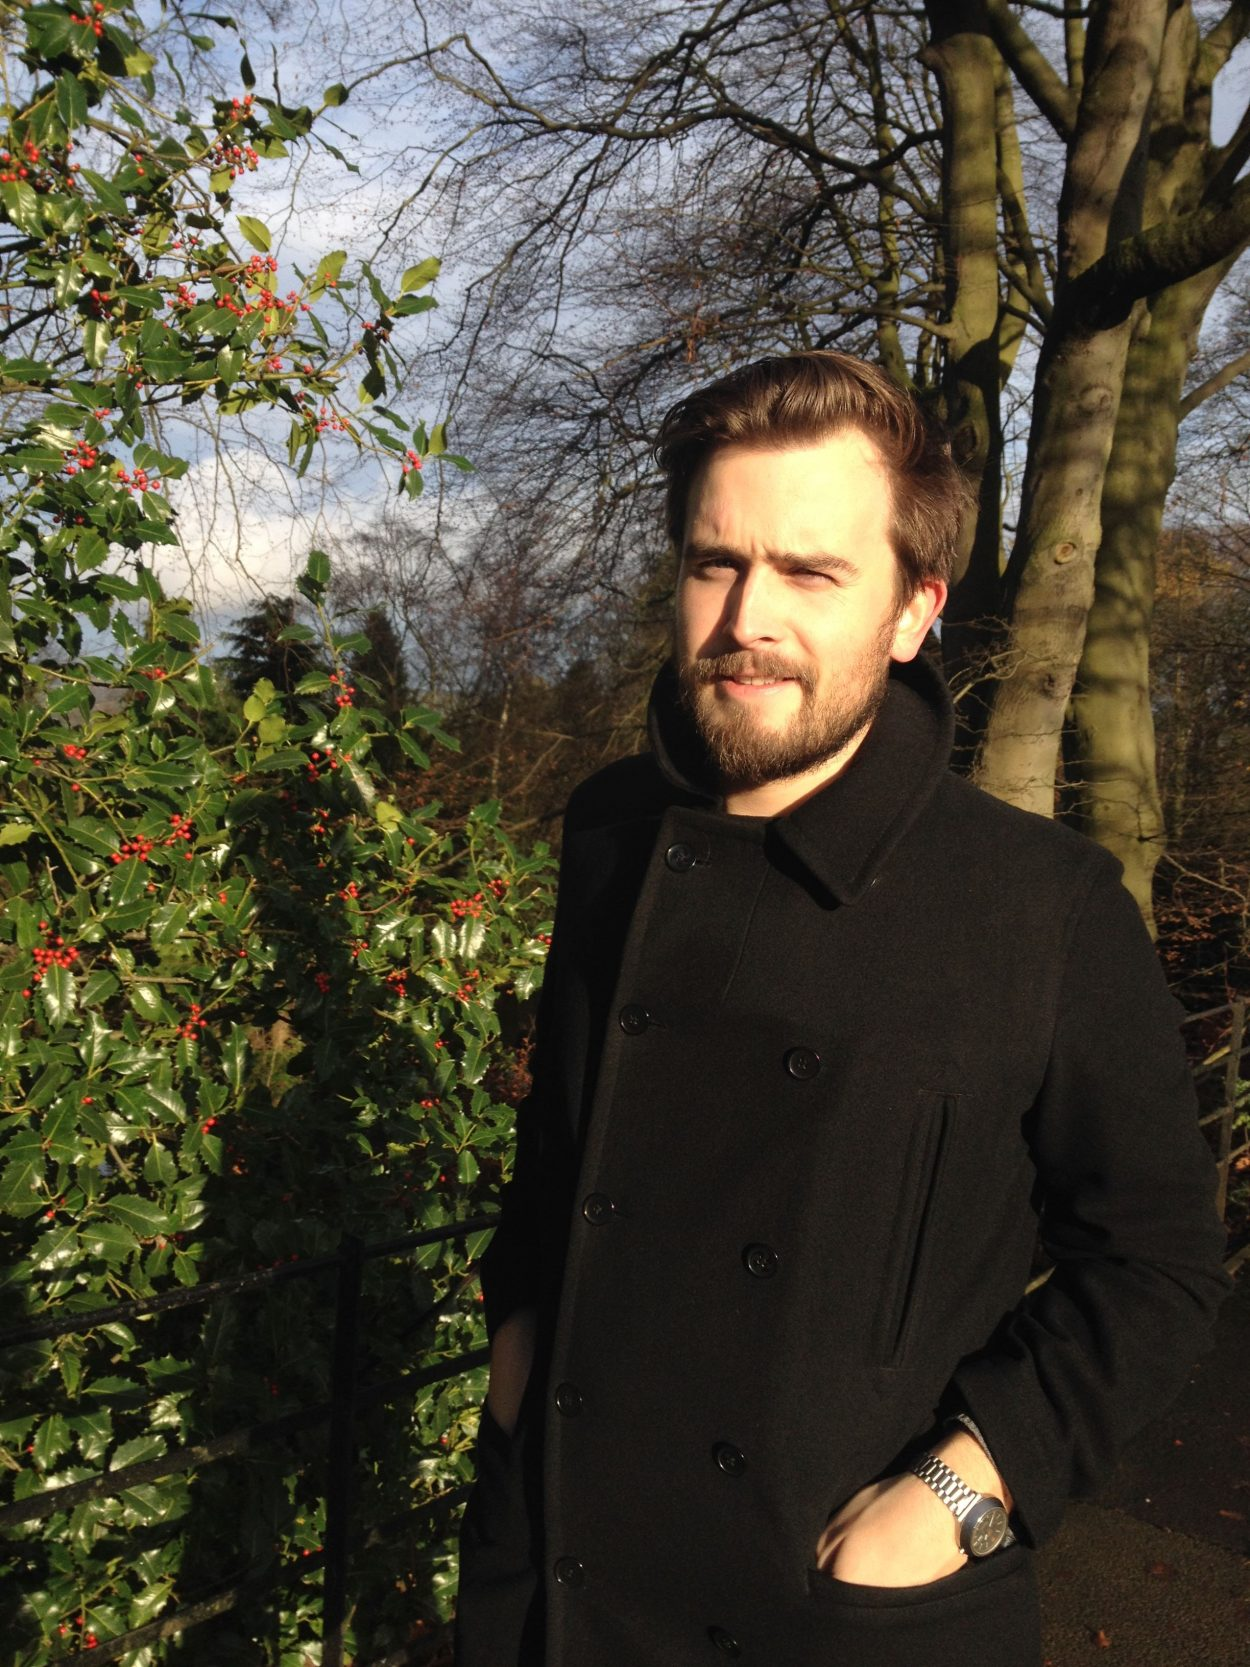 A man in a black pea coat standing in front of holly bushes as the sun sets